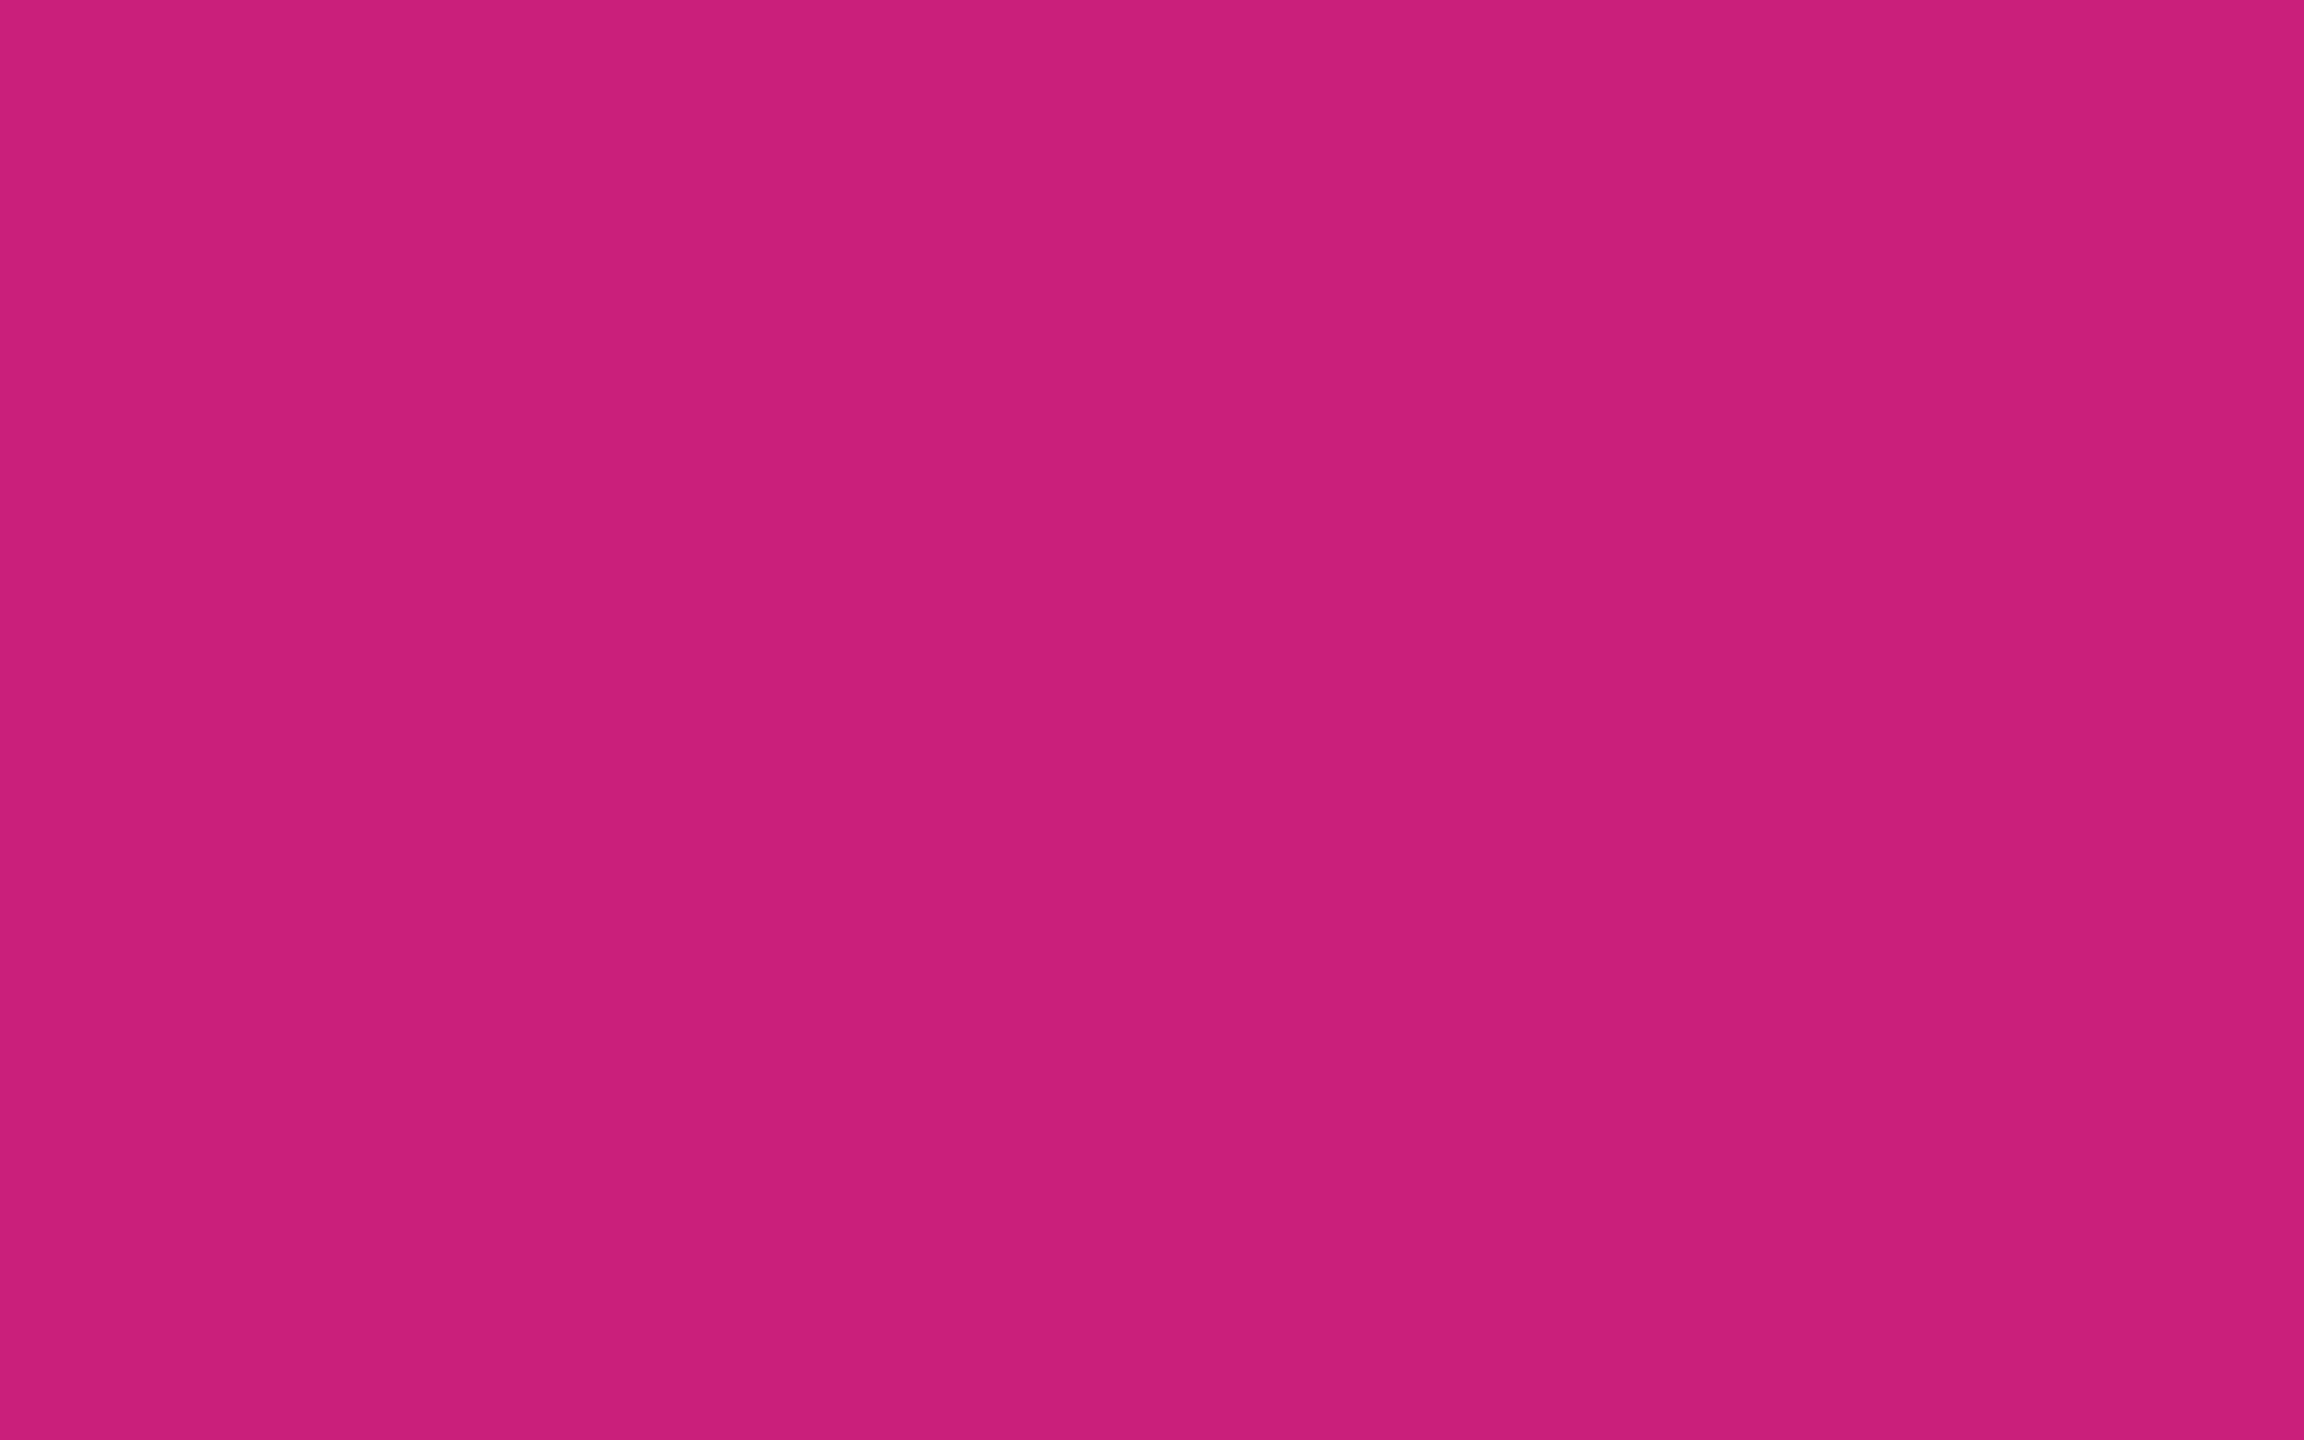 2304x1440 Magenta Dye Solid Color Background